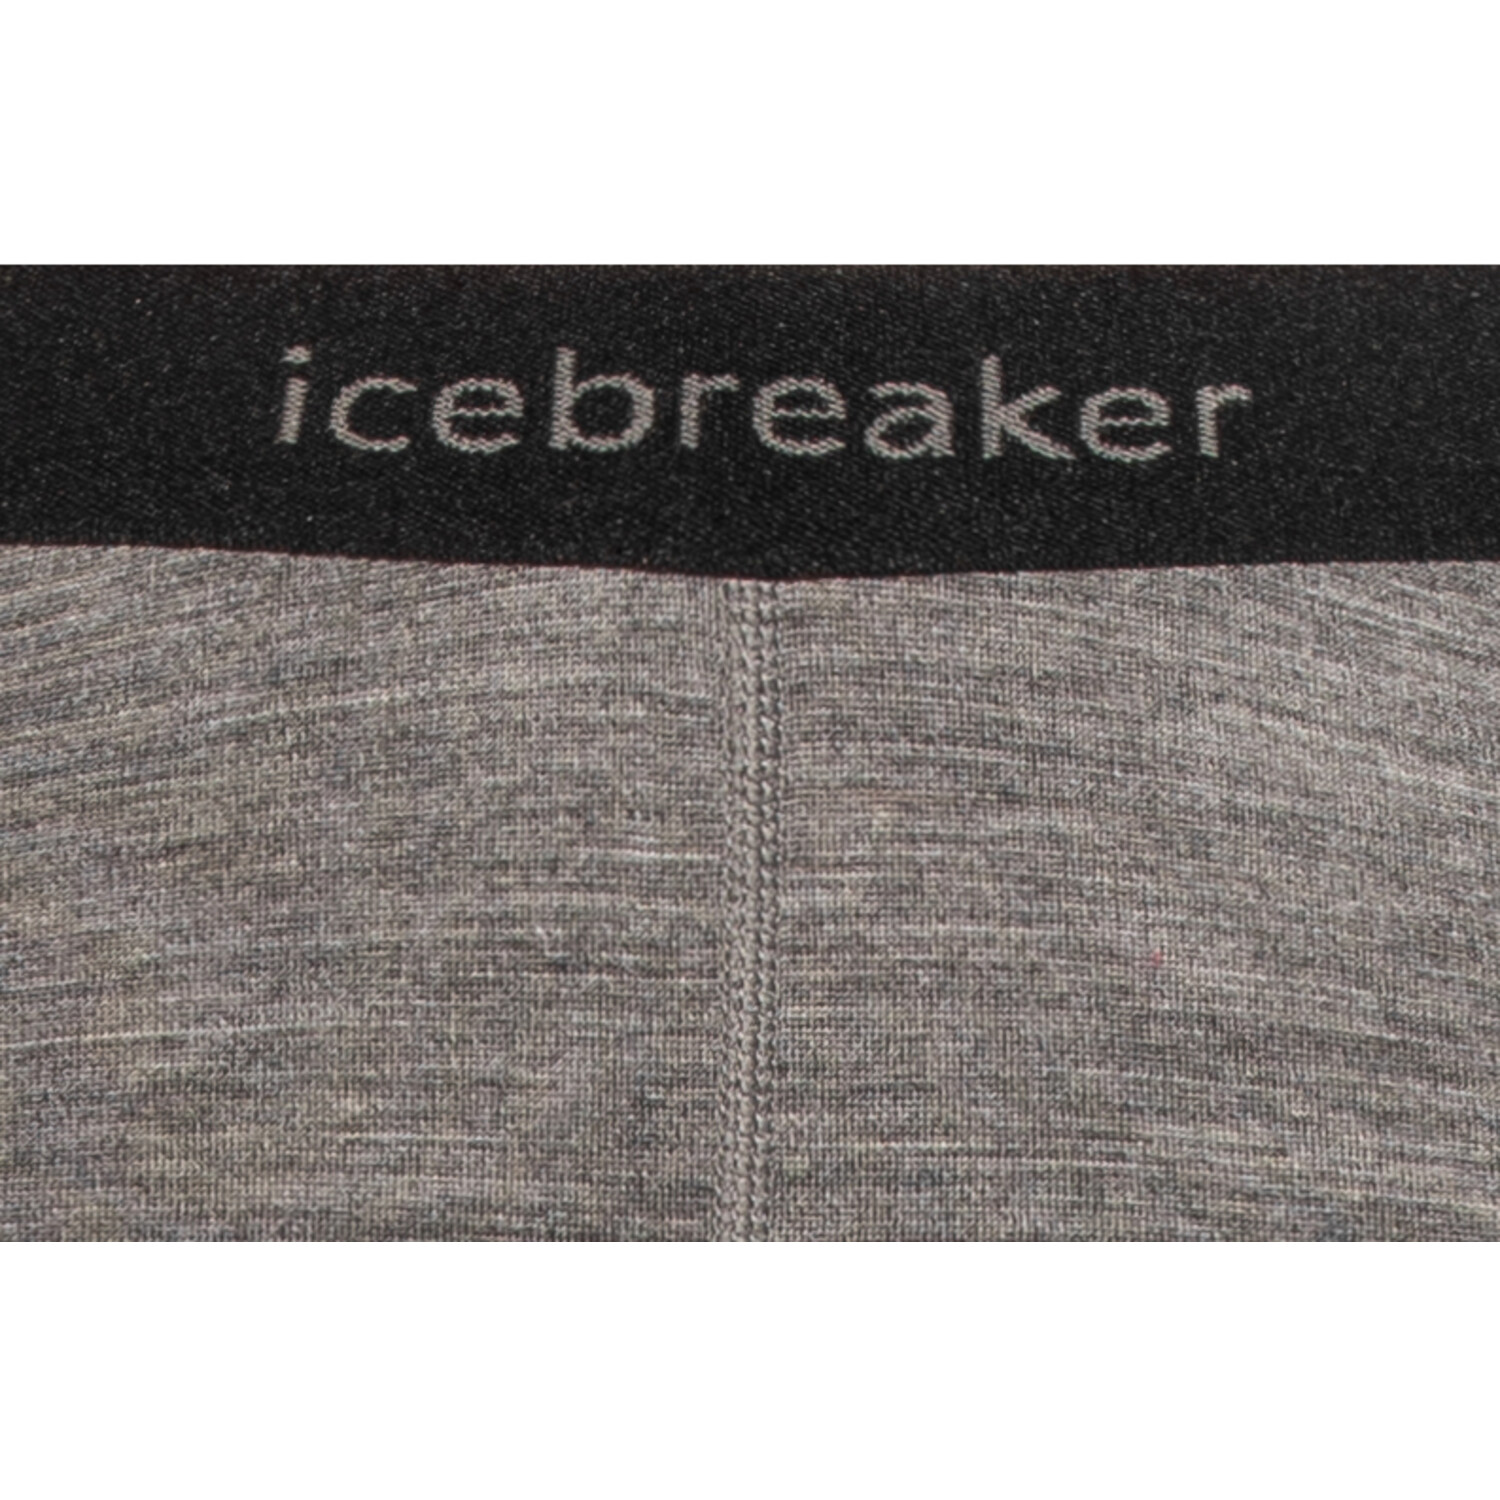 Icebreaker 200 Oasis Leggings Damen gritstone heather